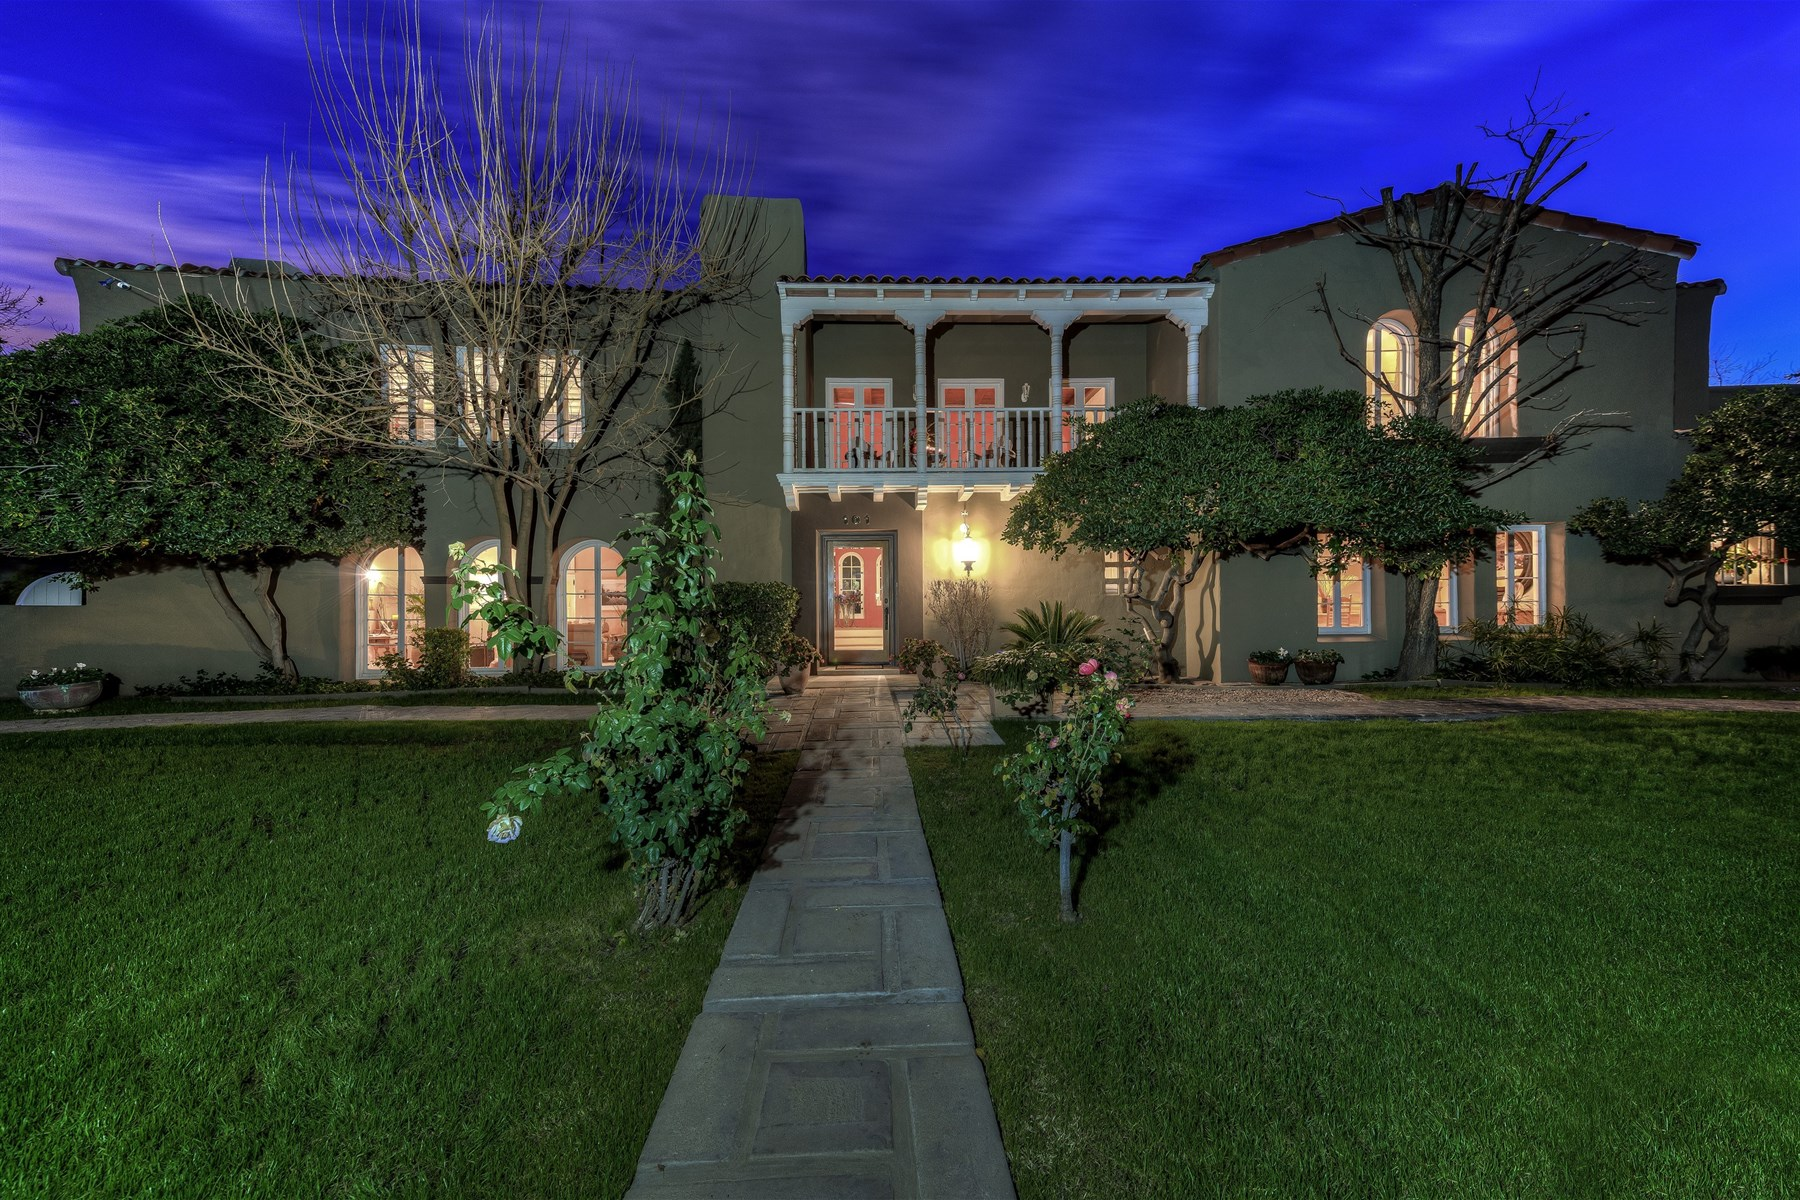 Property For Sale at Incredible 1935 adobe home with classic Monterey architecture